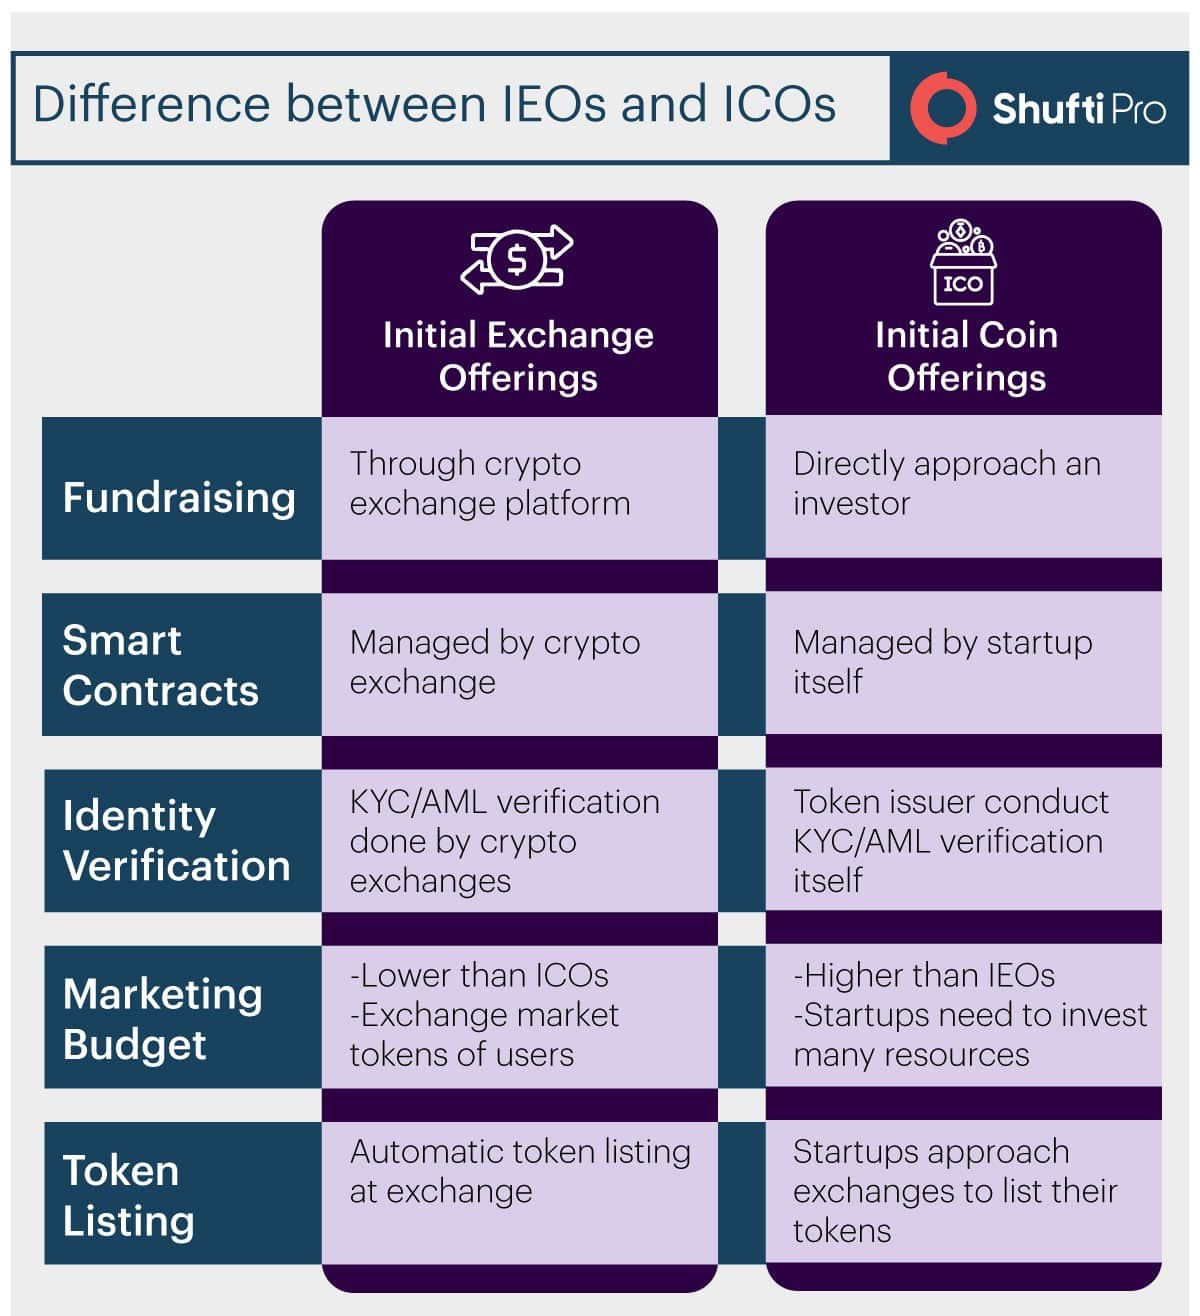 Difference between ICO and IEO